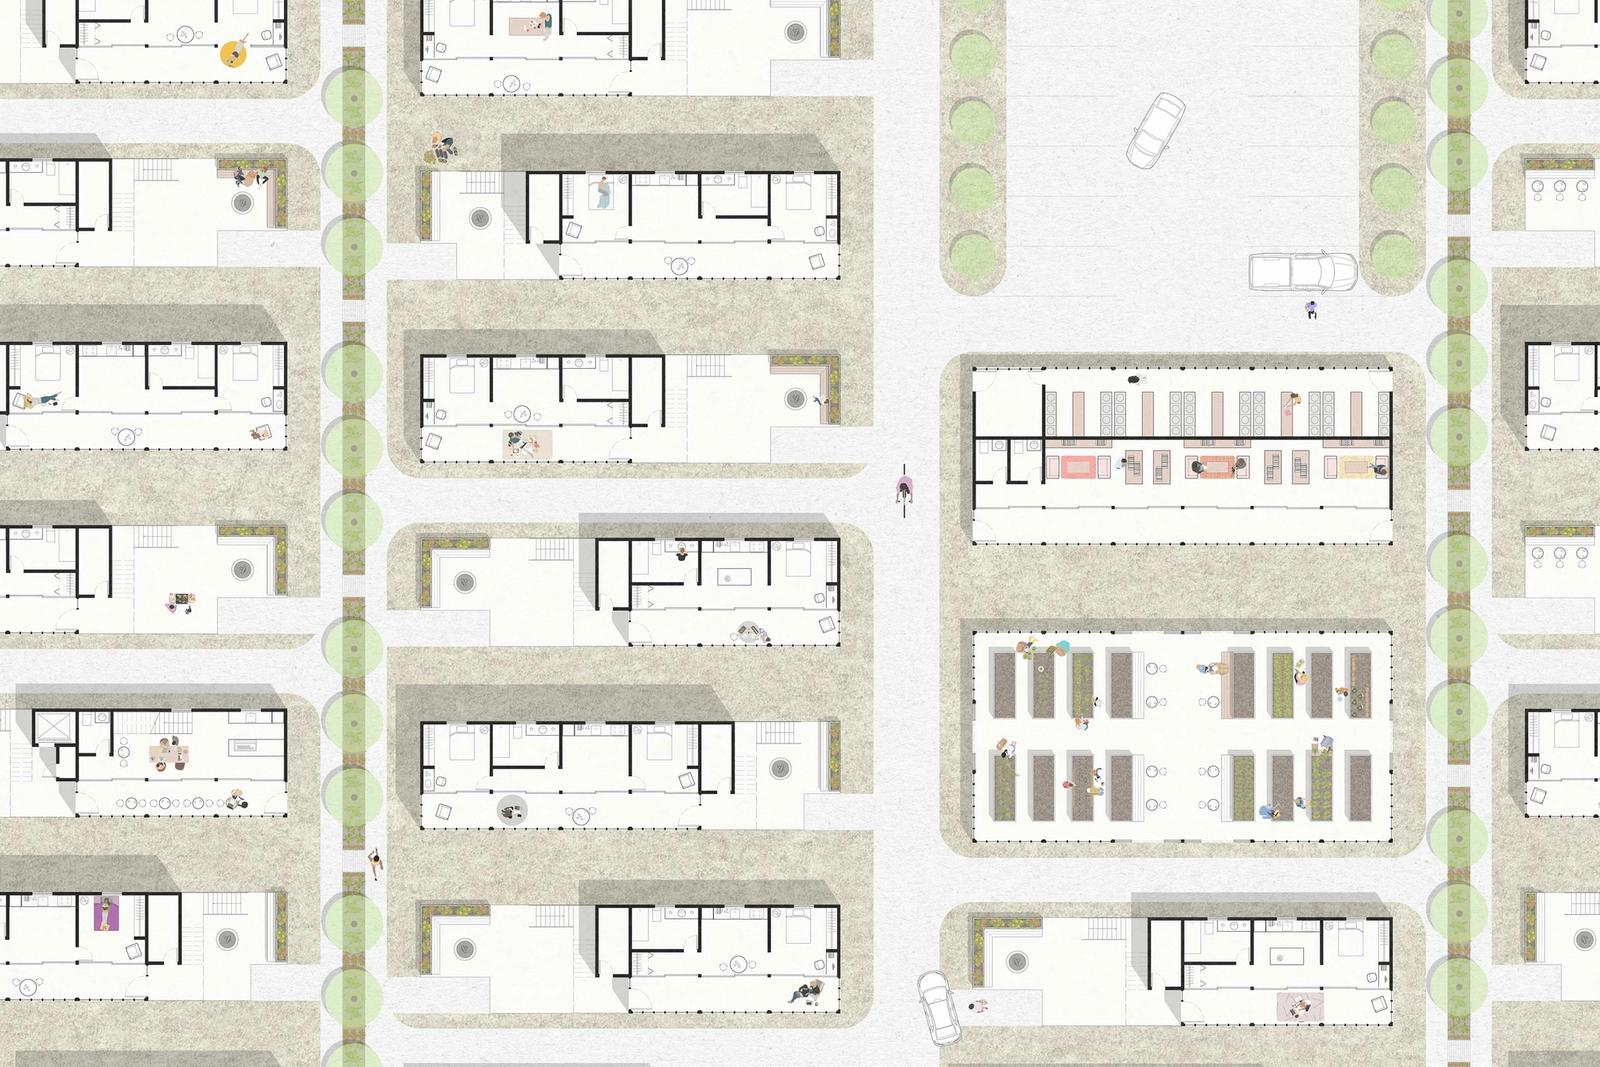 Outer Mix - Investigating mixed-use development as a means to fostering a healthy, year-round community on the Outer Cape - Plan 5 - Community Block B